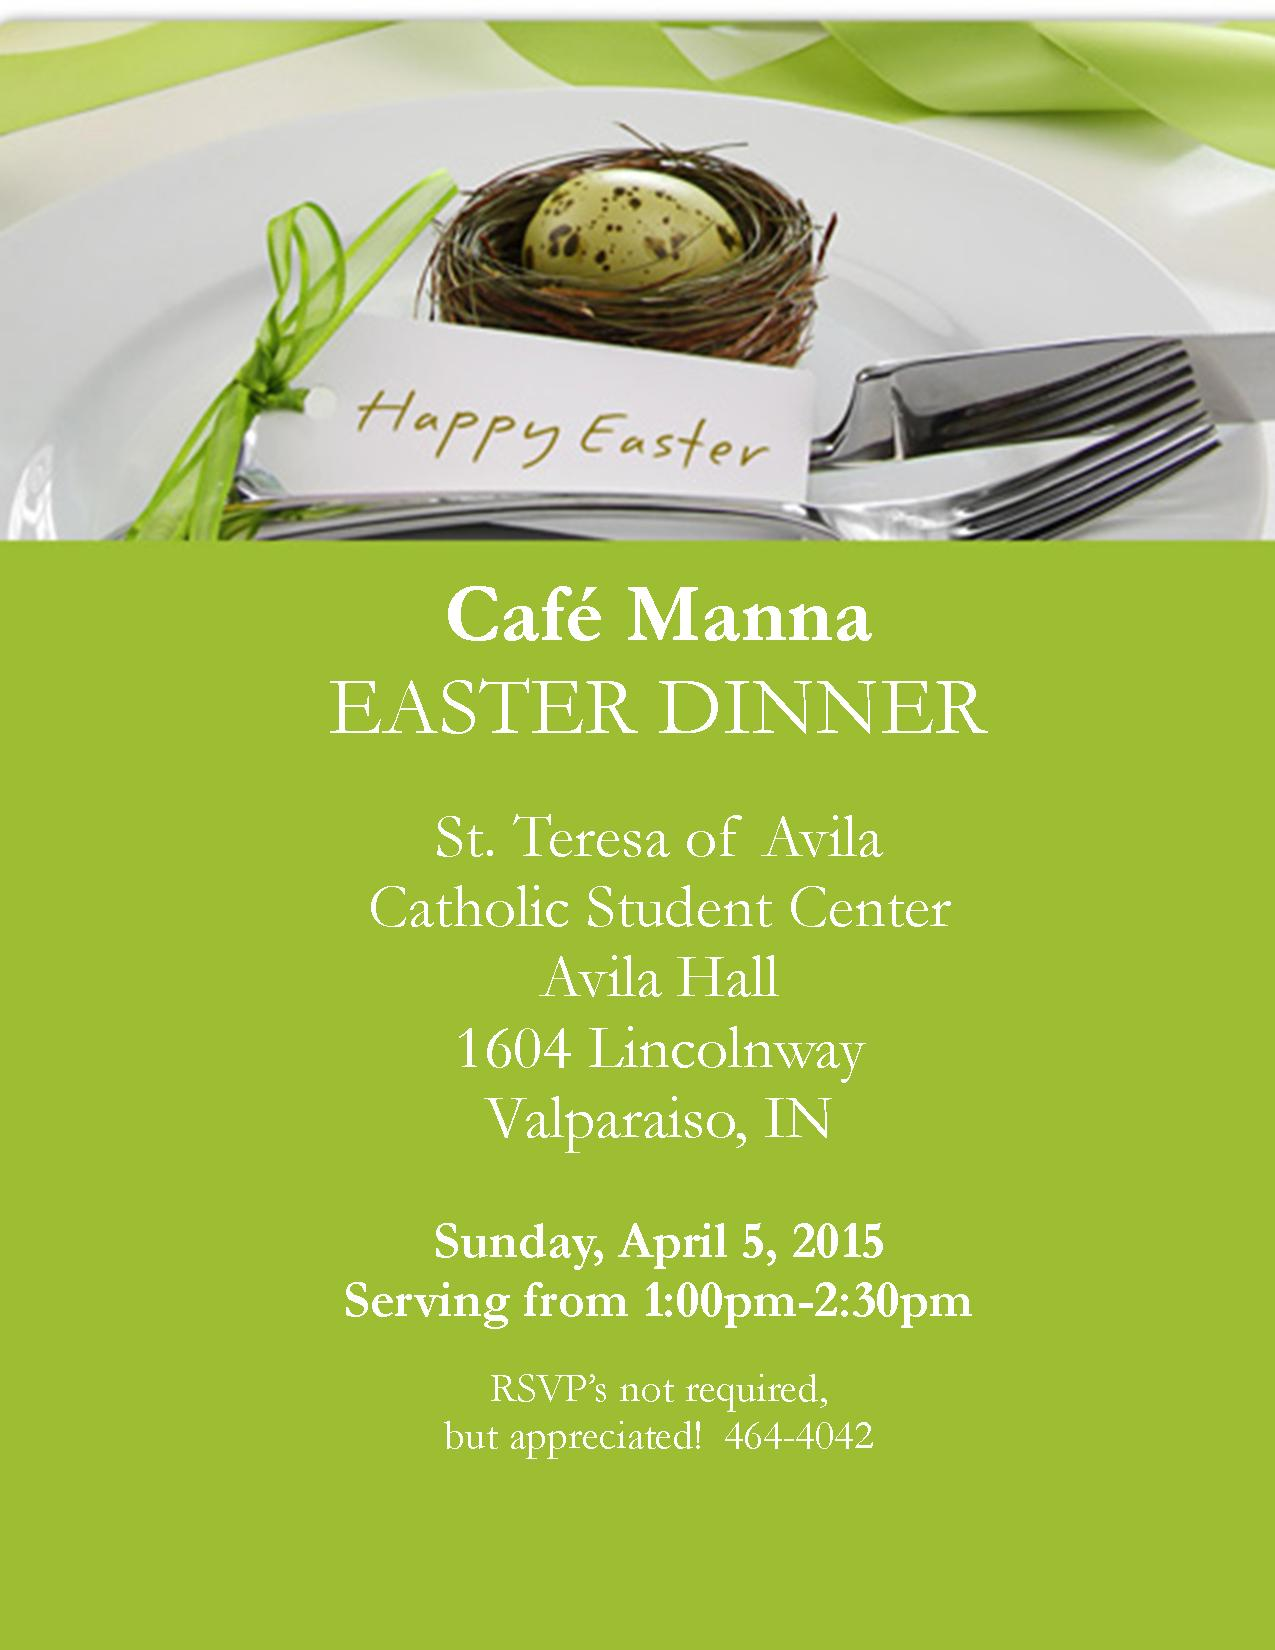 Cafe_Manna_Easter_Dinner_28Free2129-2